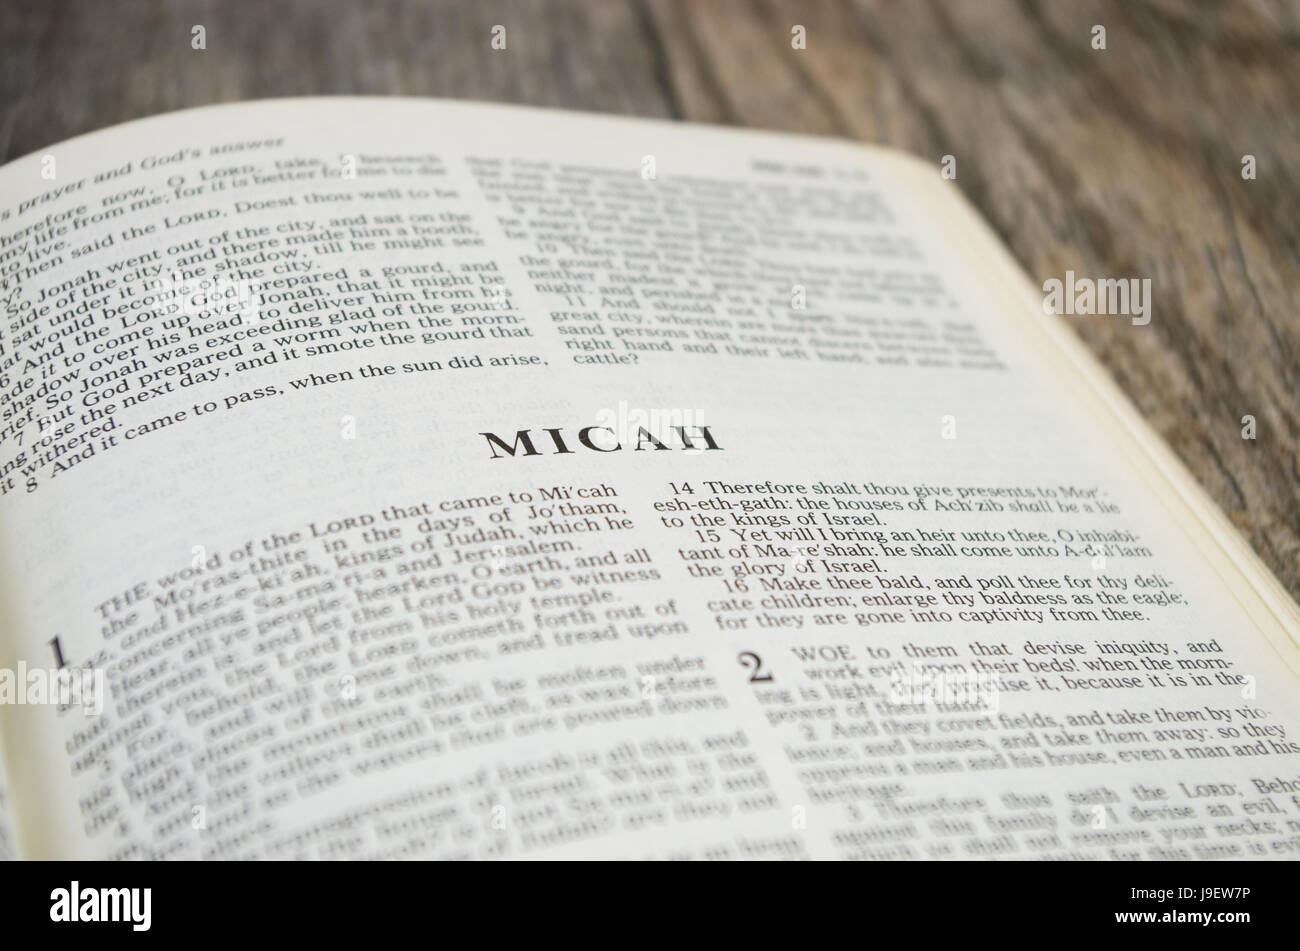 Title page for the book of Micah in the Bible – King James Version - Stock Image